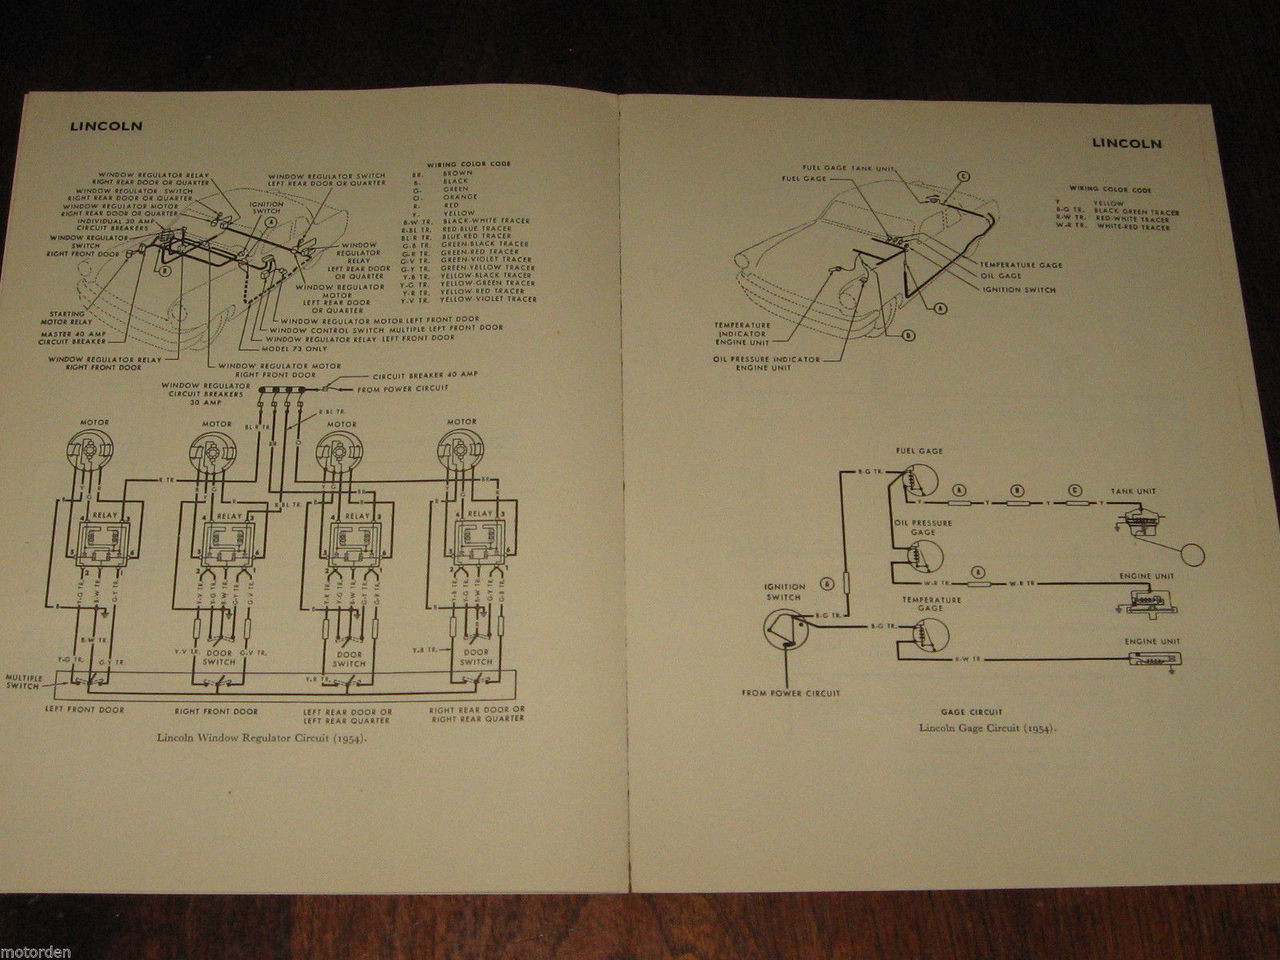 1954 Lincoln Wiring Diagrams 1977 chevy truck fuse box ... on